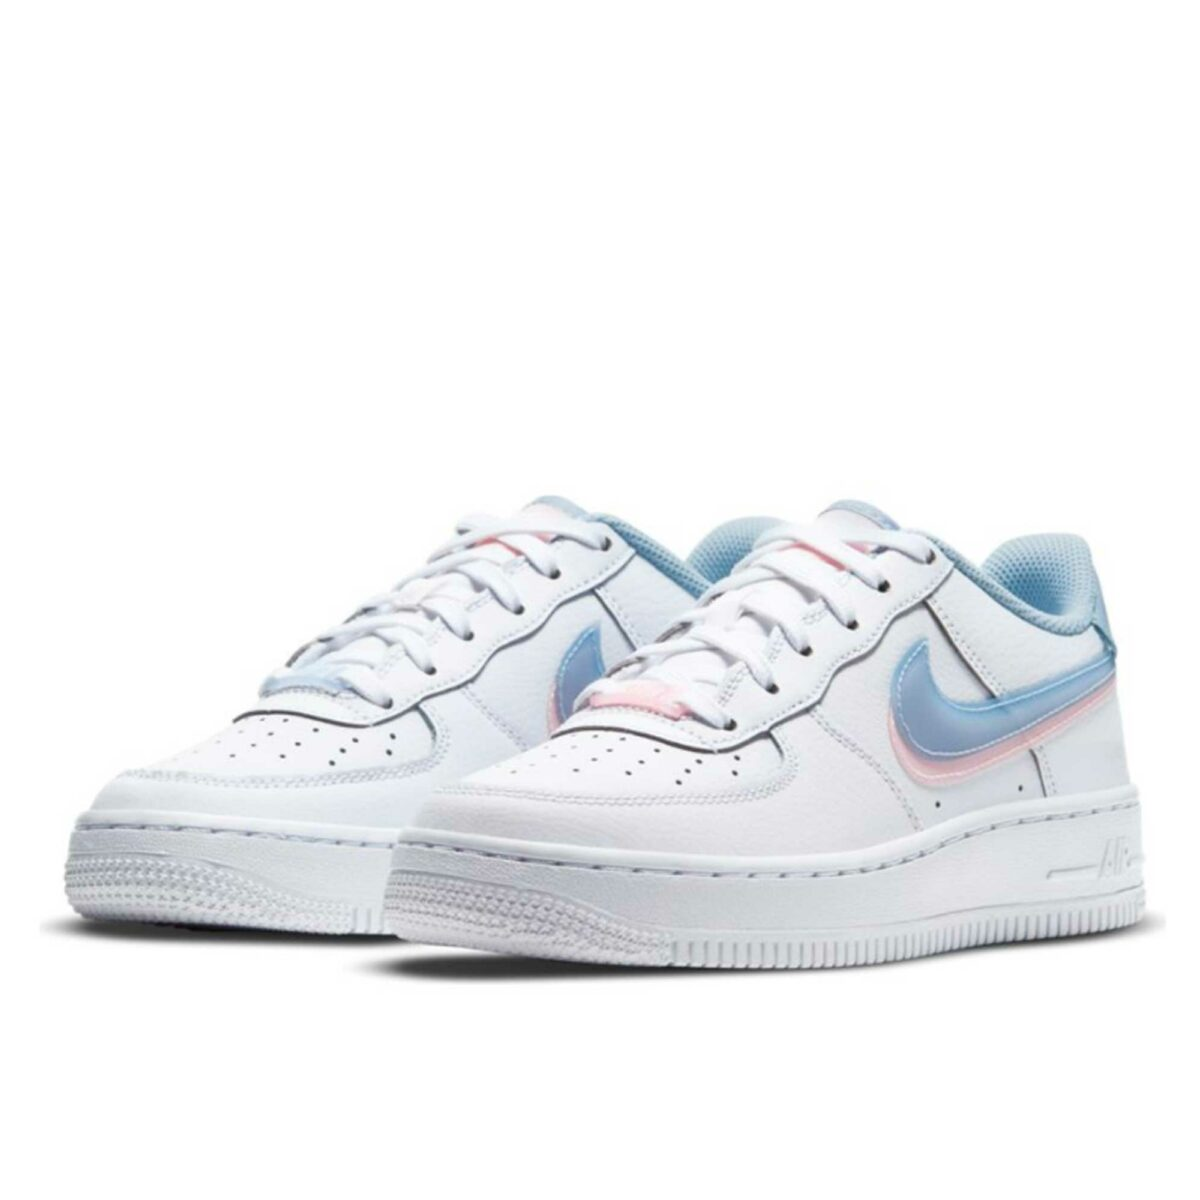 nike air force 1 lv8 gs white ight armory blue cw1574_100 купить